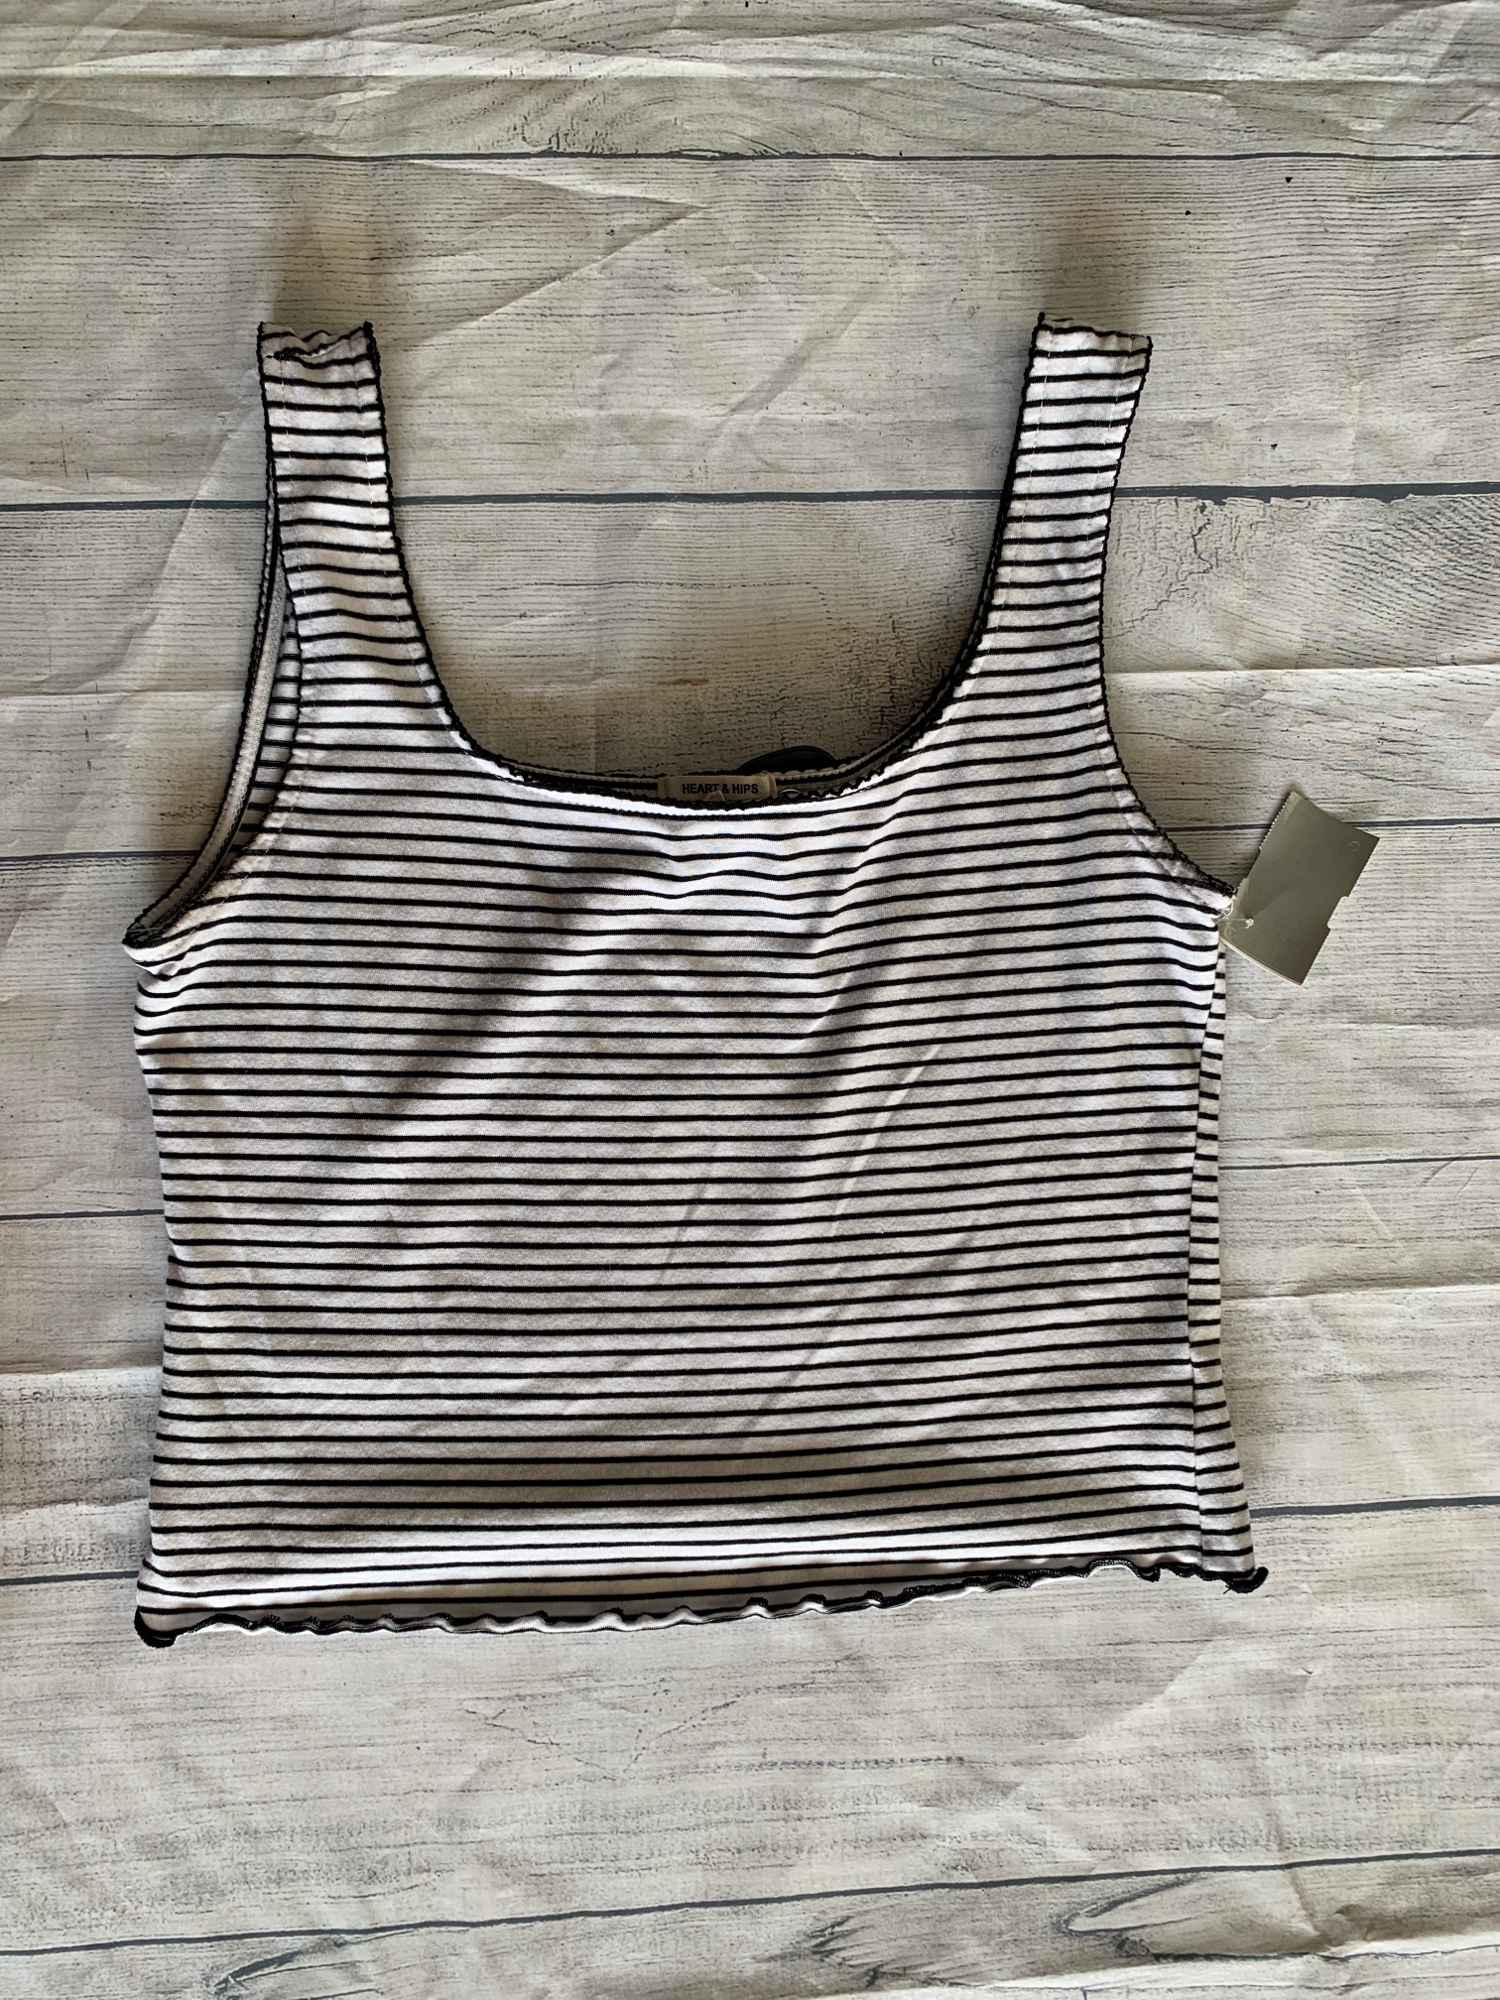 Heart And Hips Tank Top Size Large - Plato's Closet